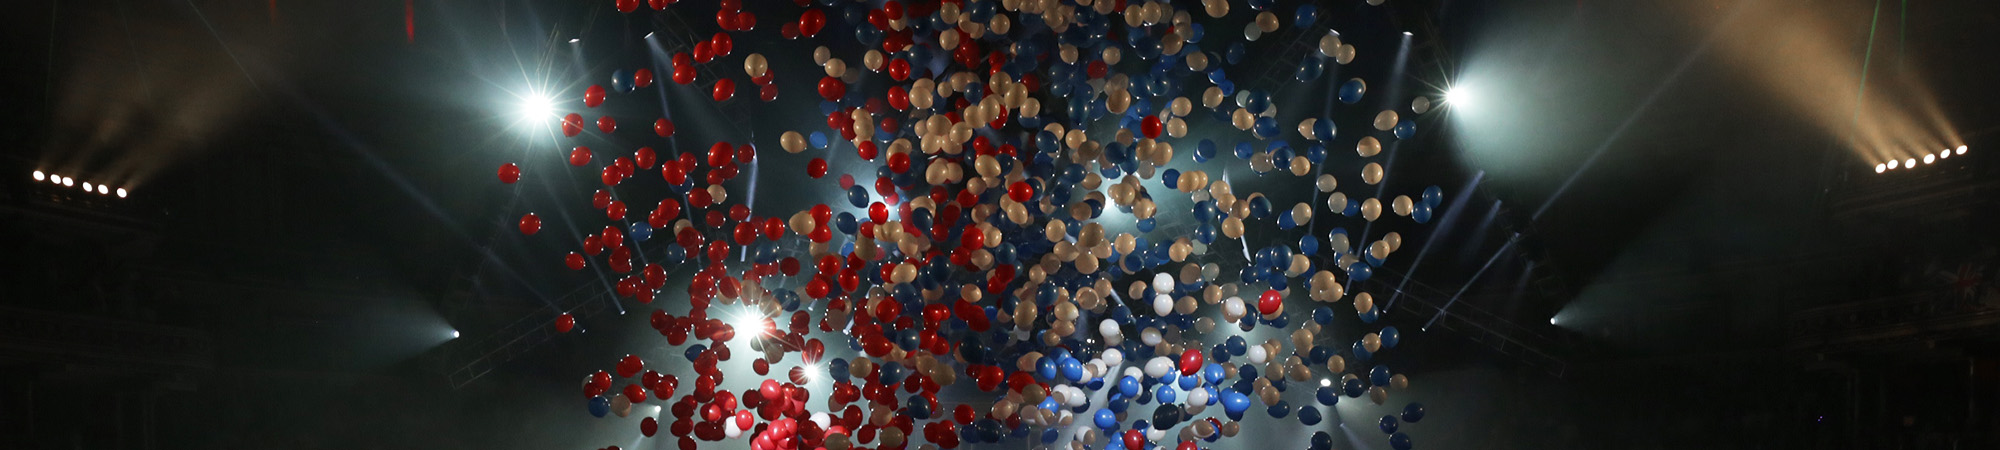 Balloons fall from the ceiling at the Royal Albert Hall